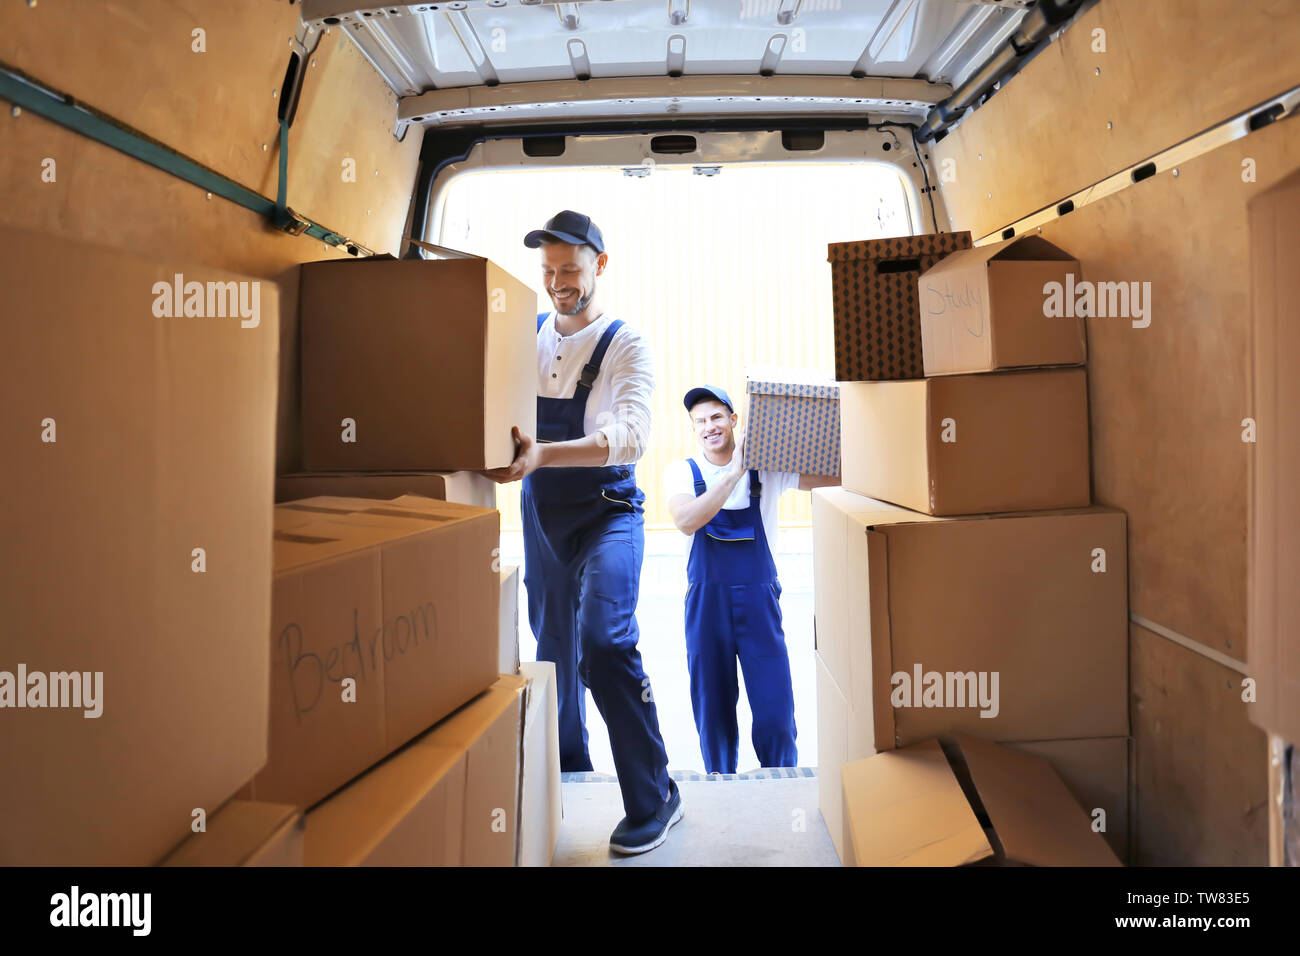 Delivery men unloading moving boxes from car - Stock Image